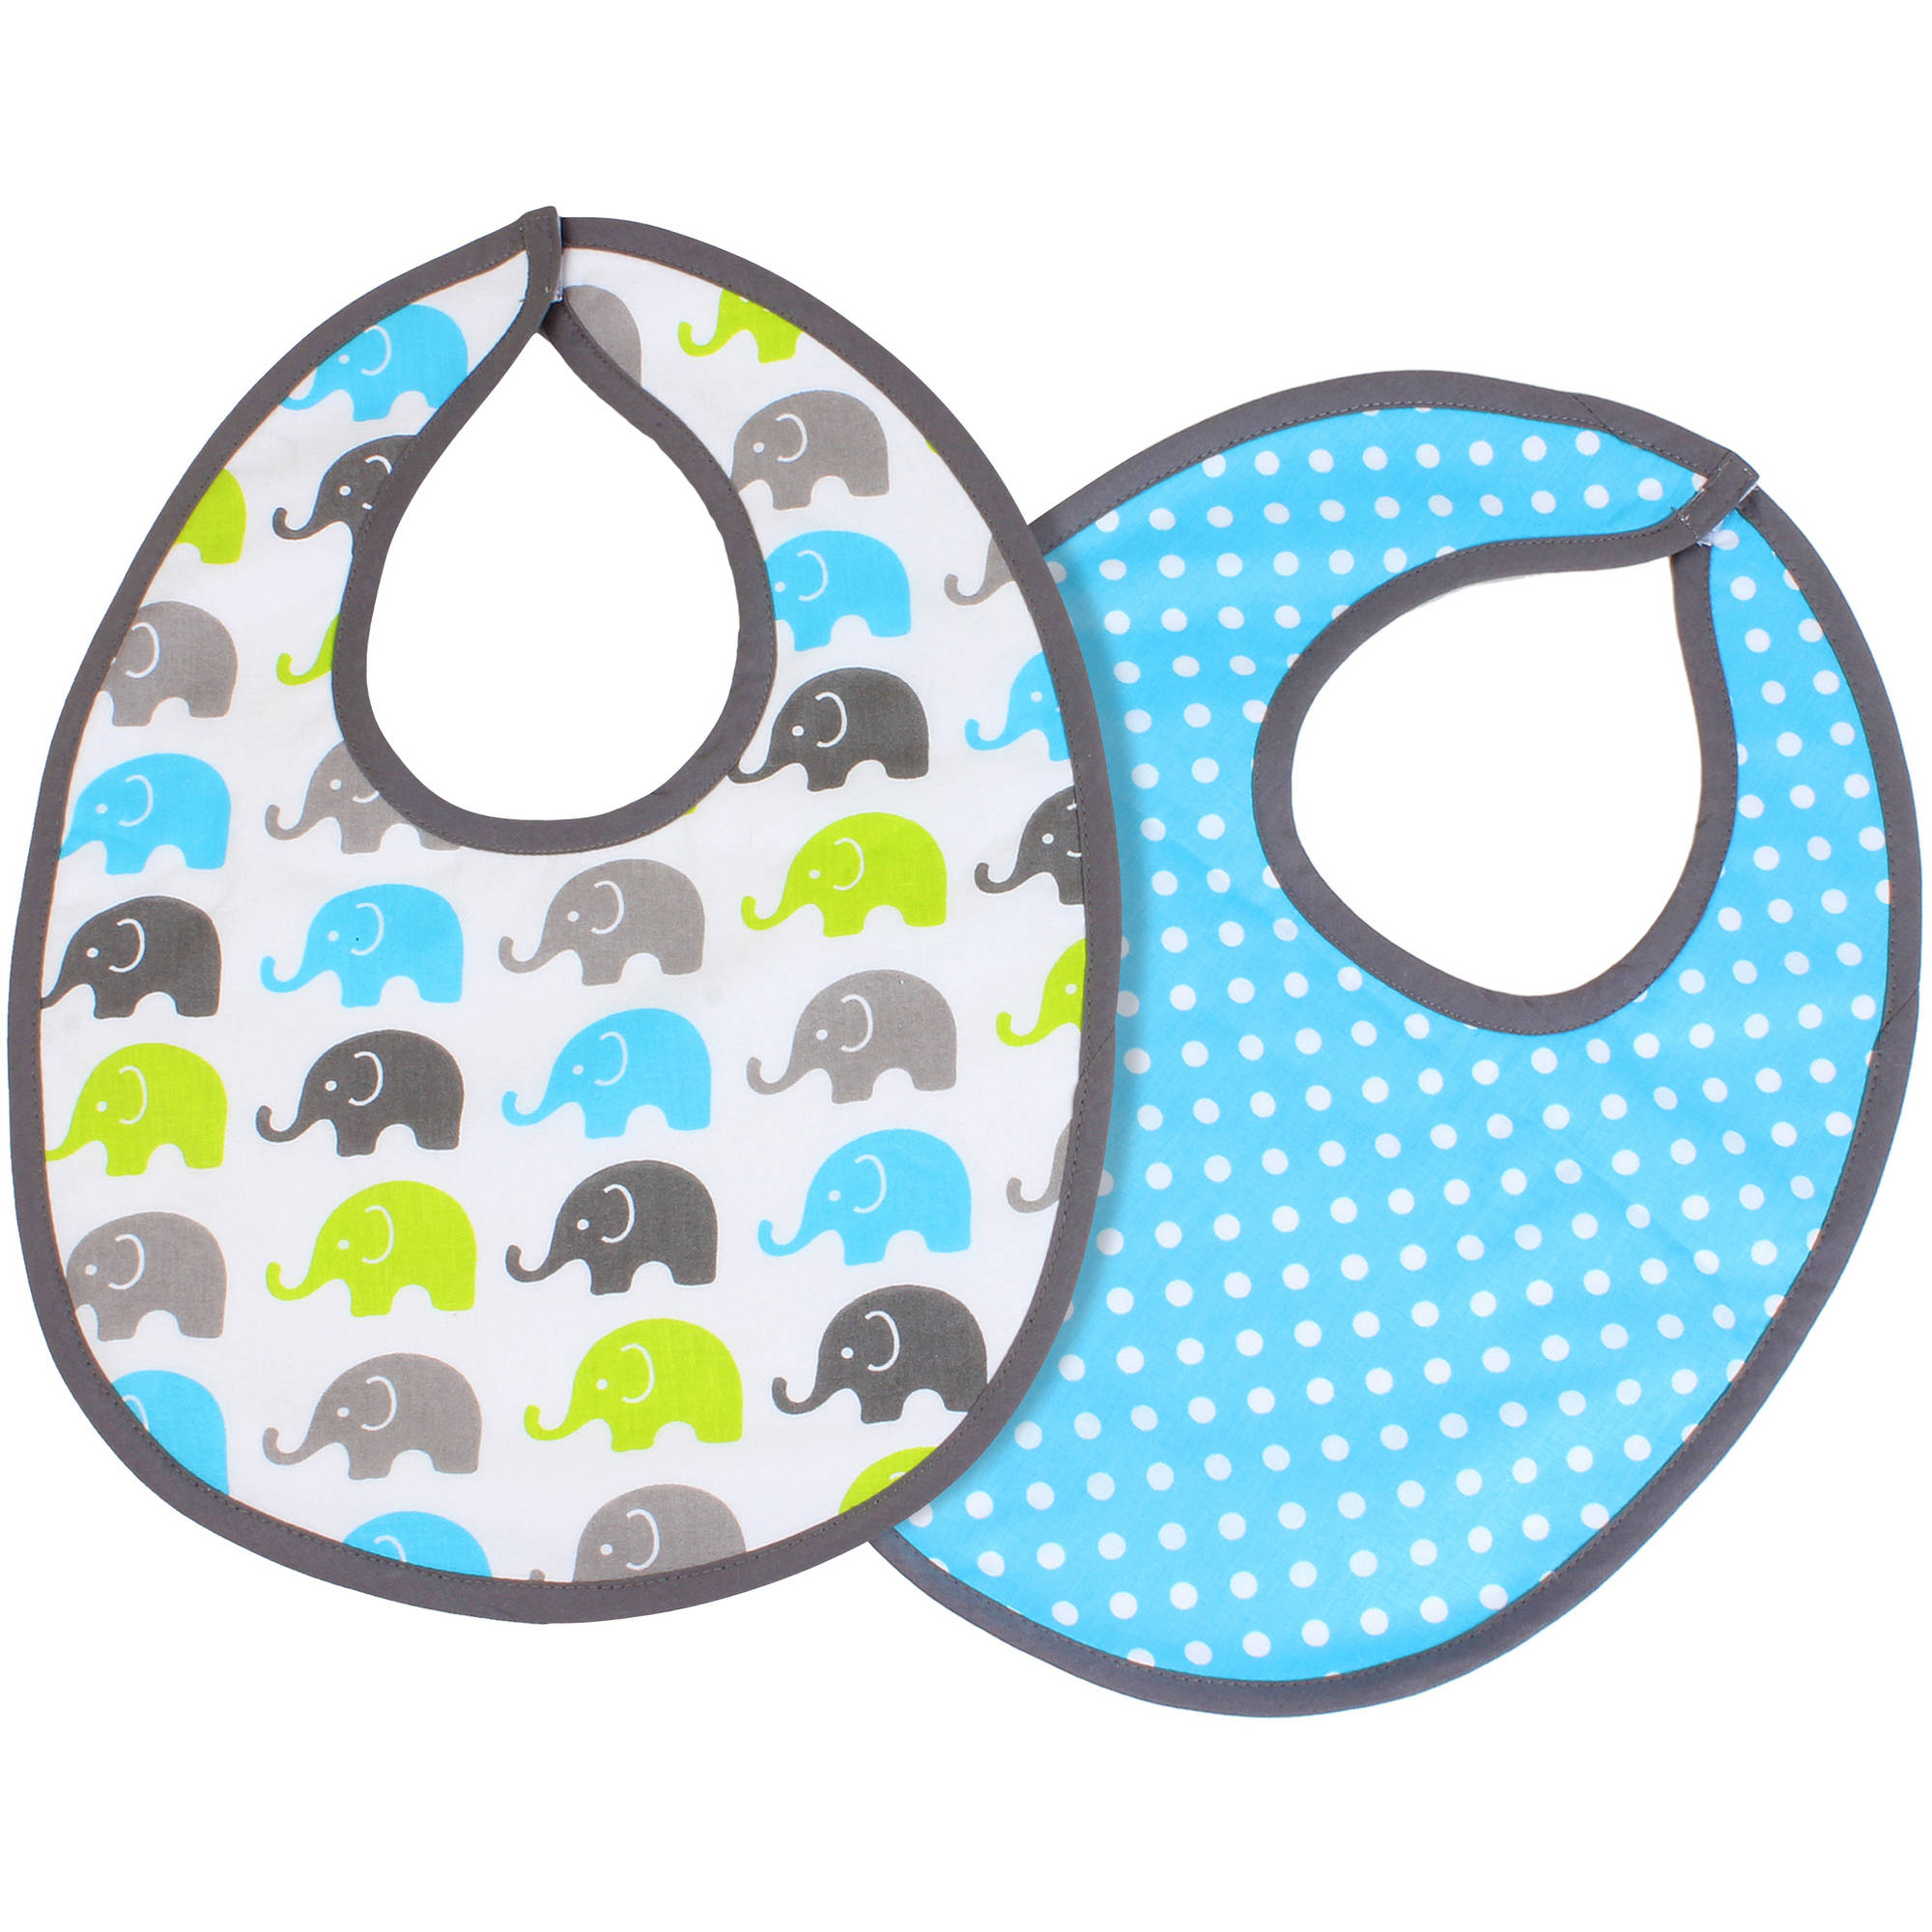 Bacati Bibs, Aqua/Lime/Grey, 2 count